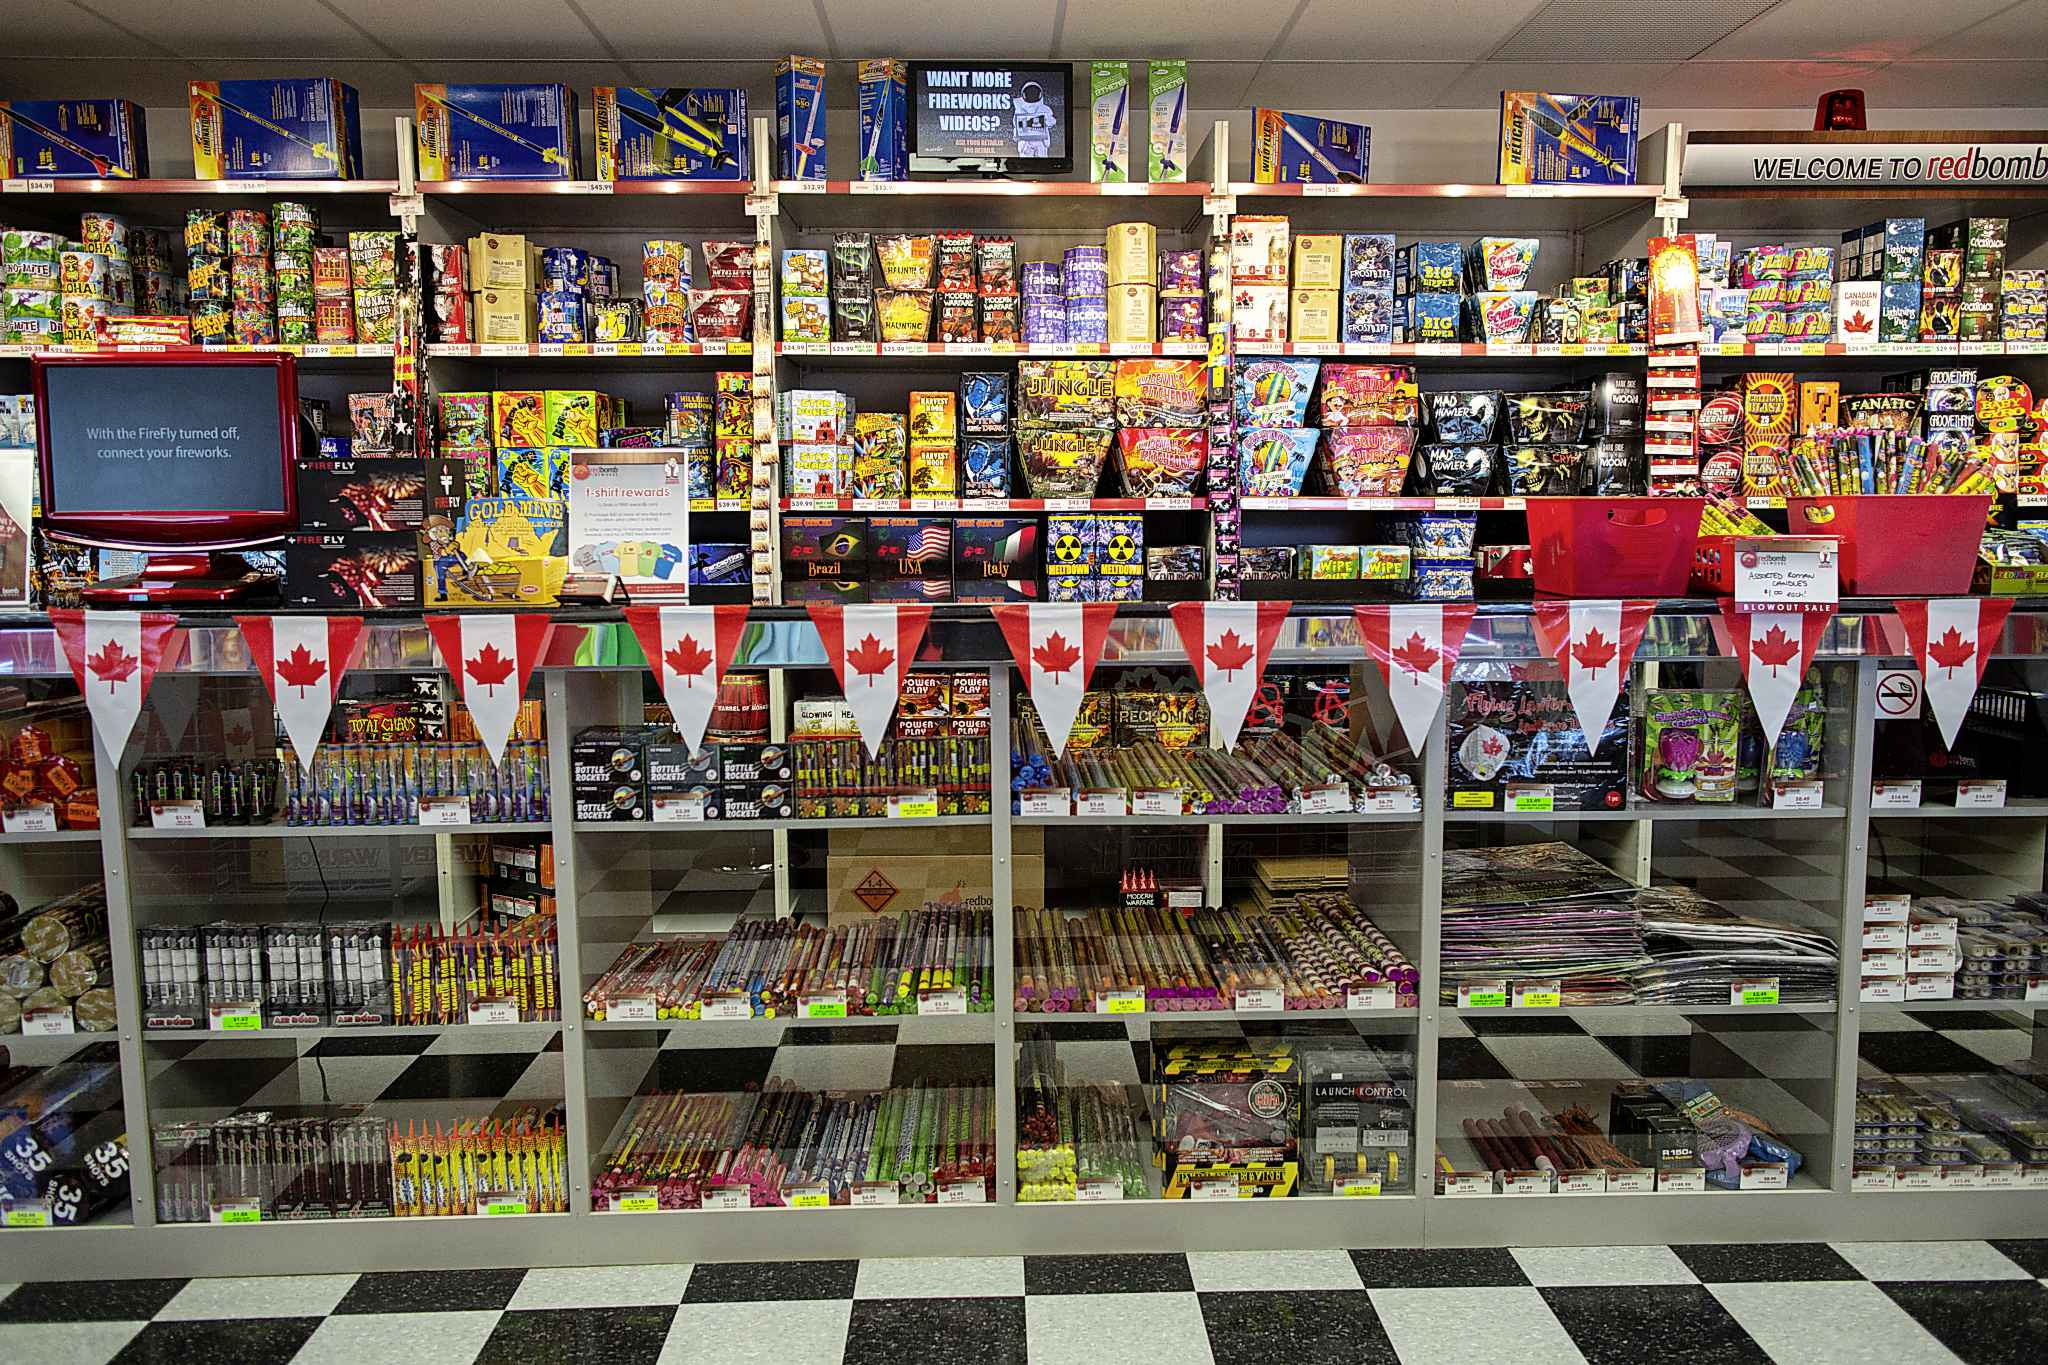 A view of the Red Bomb Fireworks customer store in Selkirk.